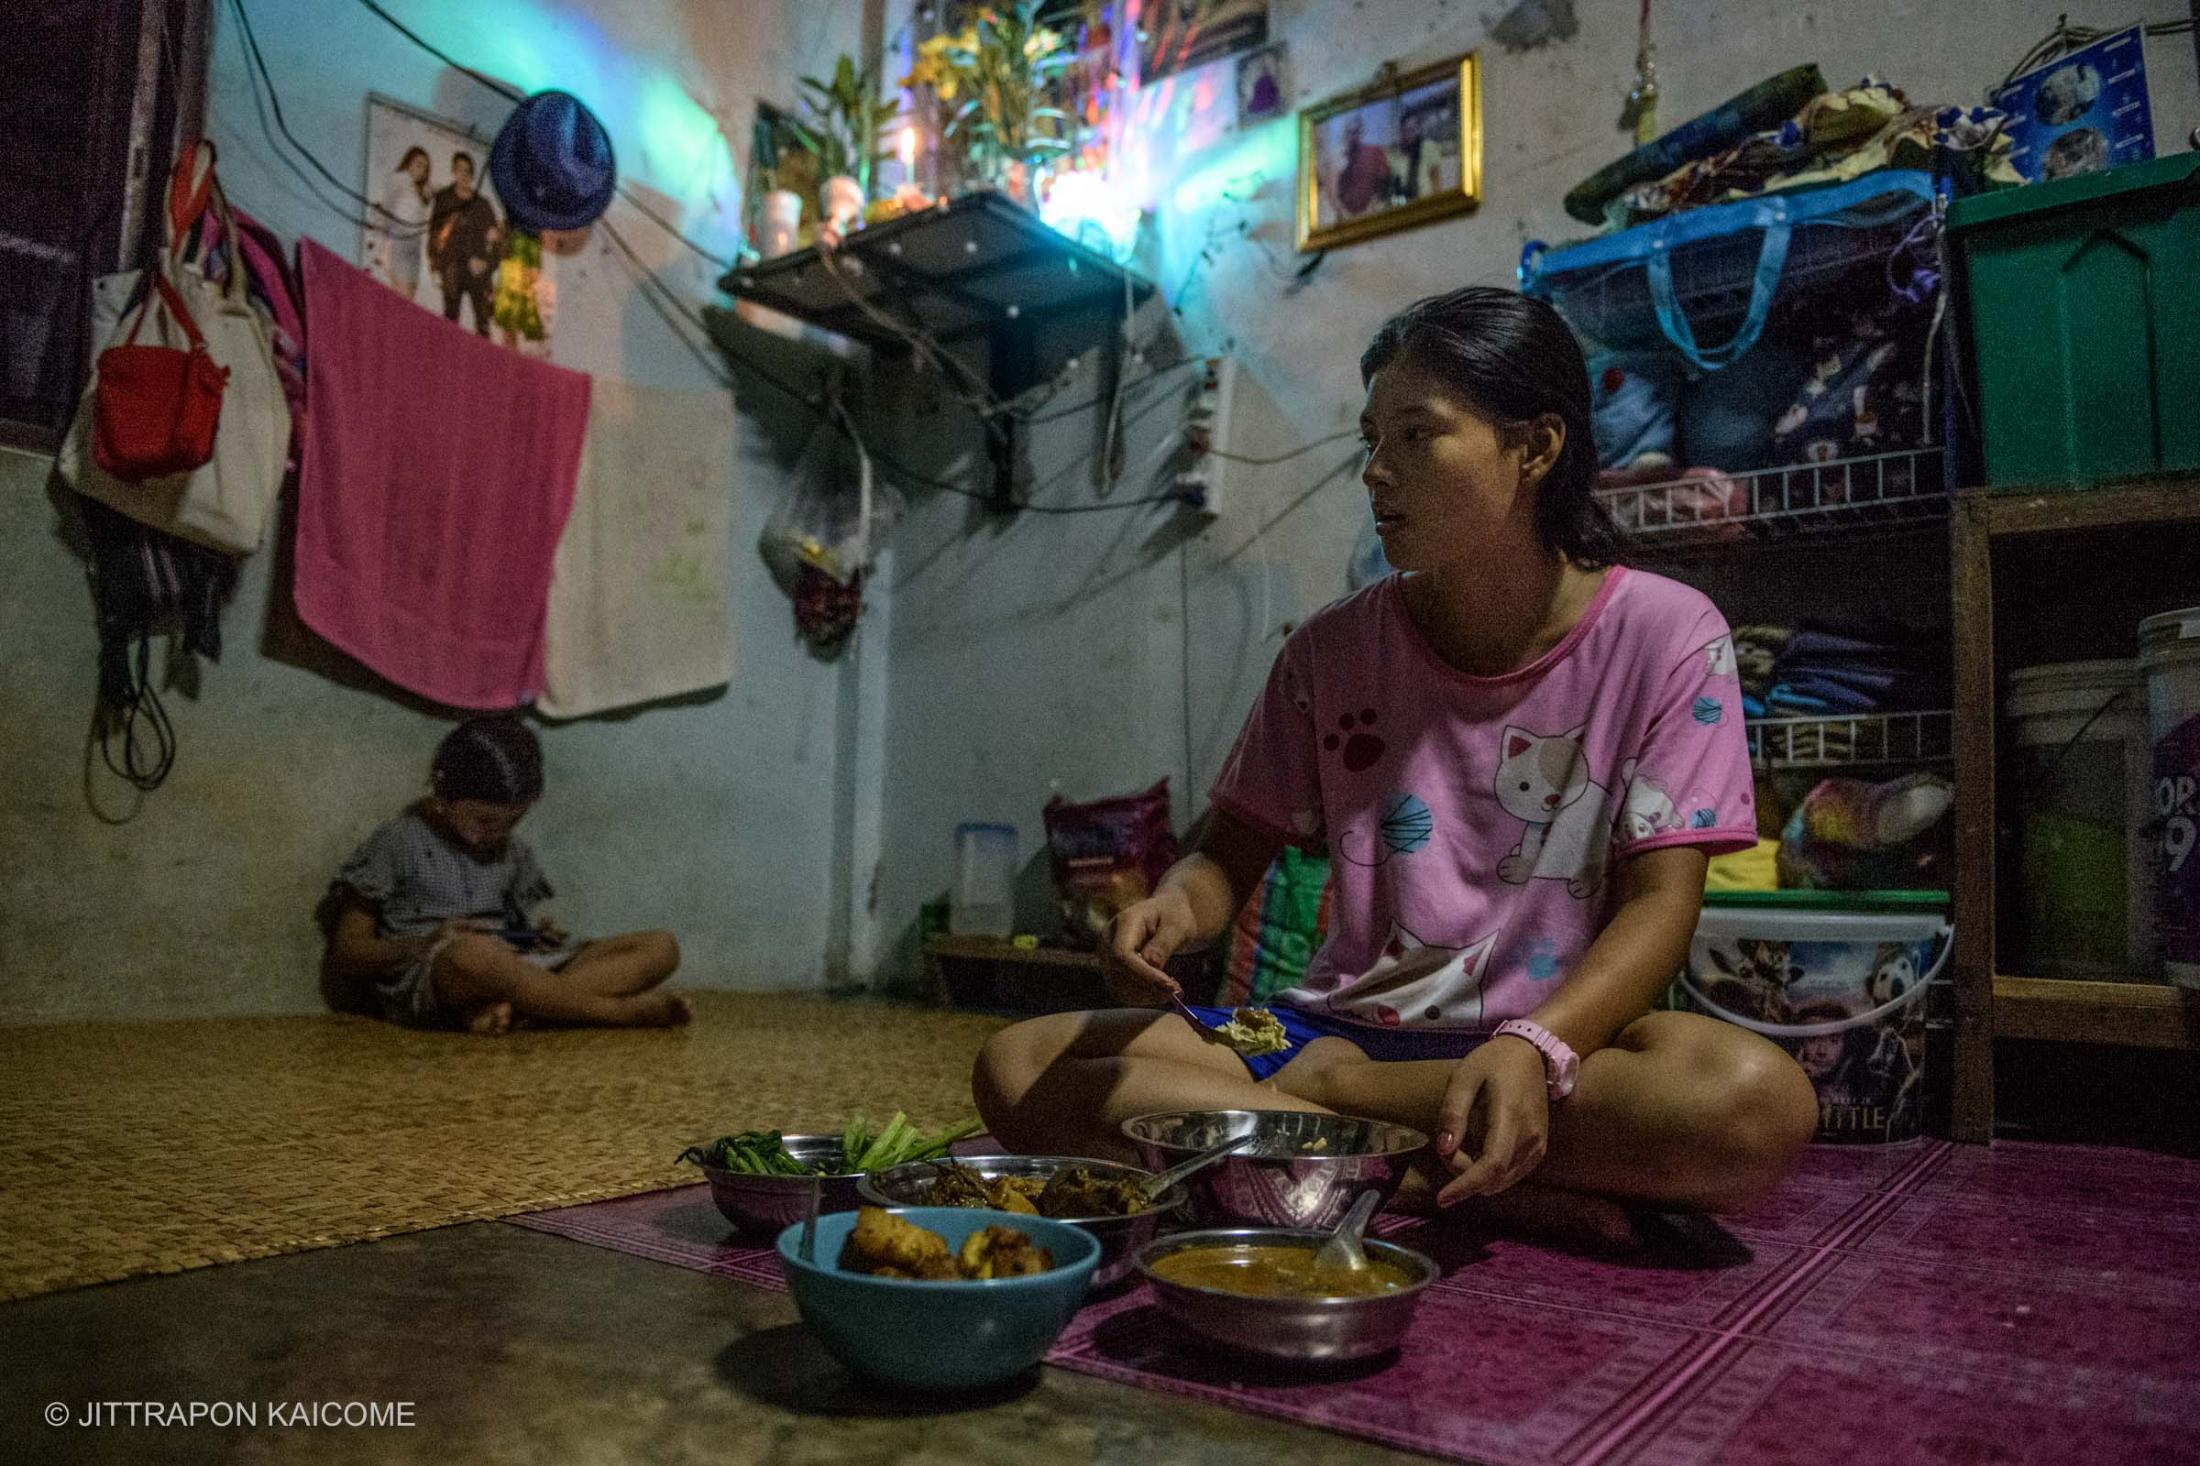 Burmese migrant worker lost her job at the sewing factory due to the Coronavirus outbreak causing no income for her to pay the daily payment and to support her child and family - Mae Sot, Tak province, Thailand, in May 2020.